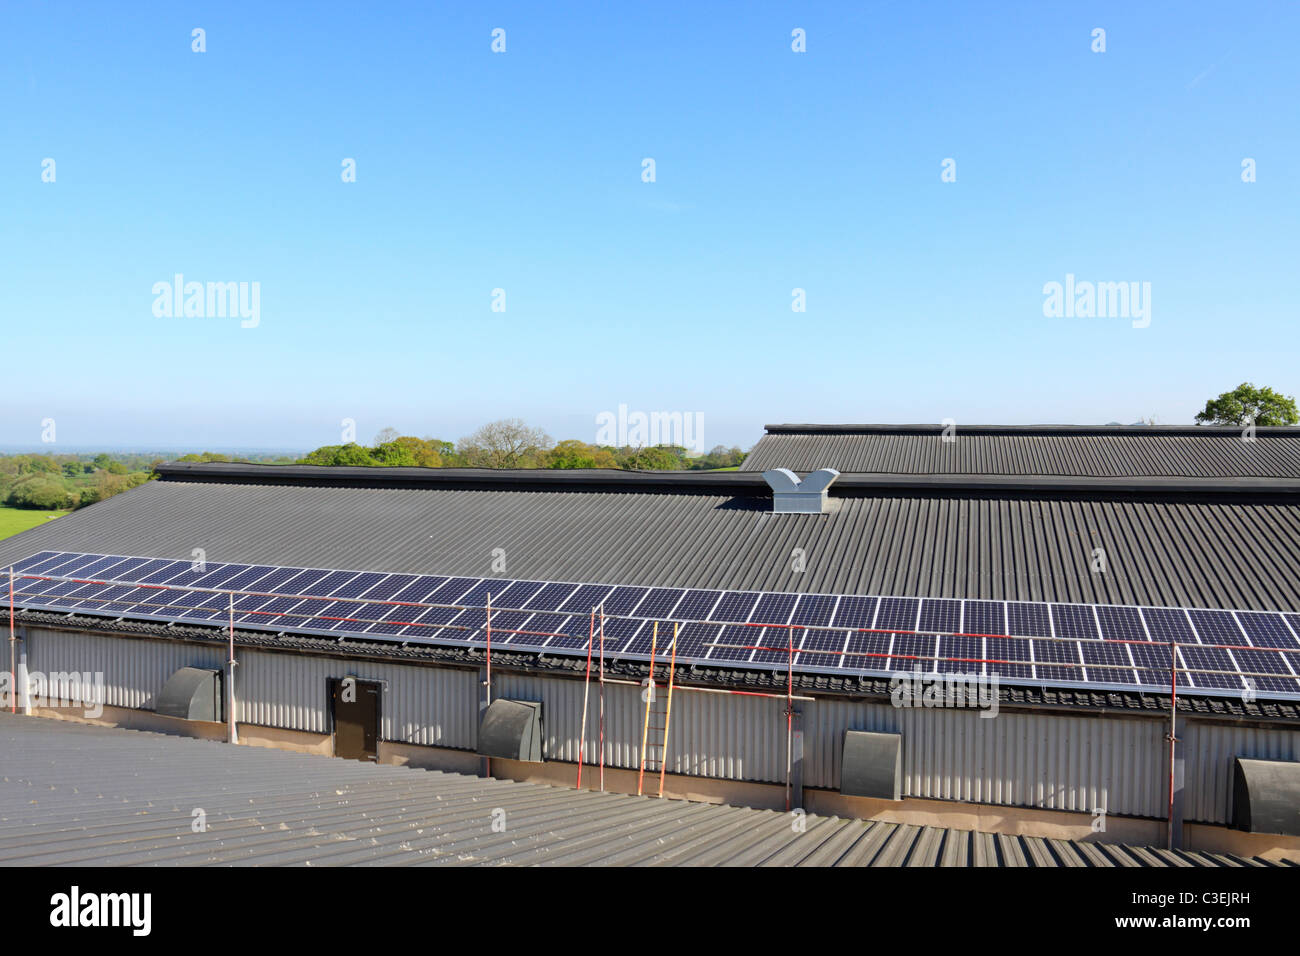 Part of a 50kWp solar photovoltaic installation on the roof of a poultry shed in Shropshire, UK - Stock Image